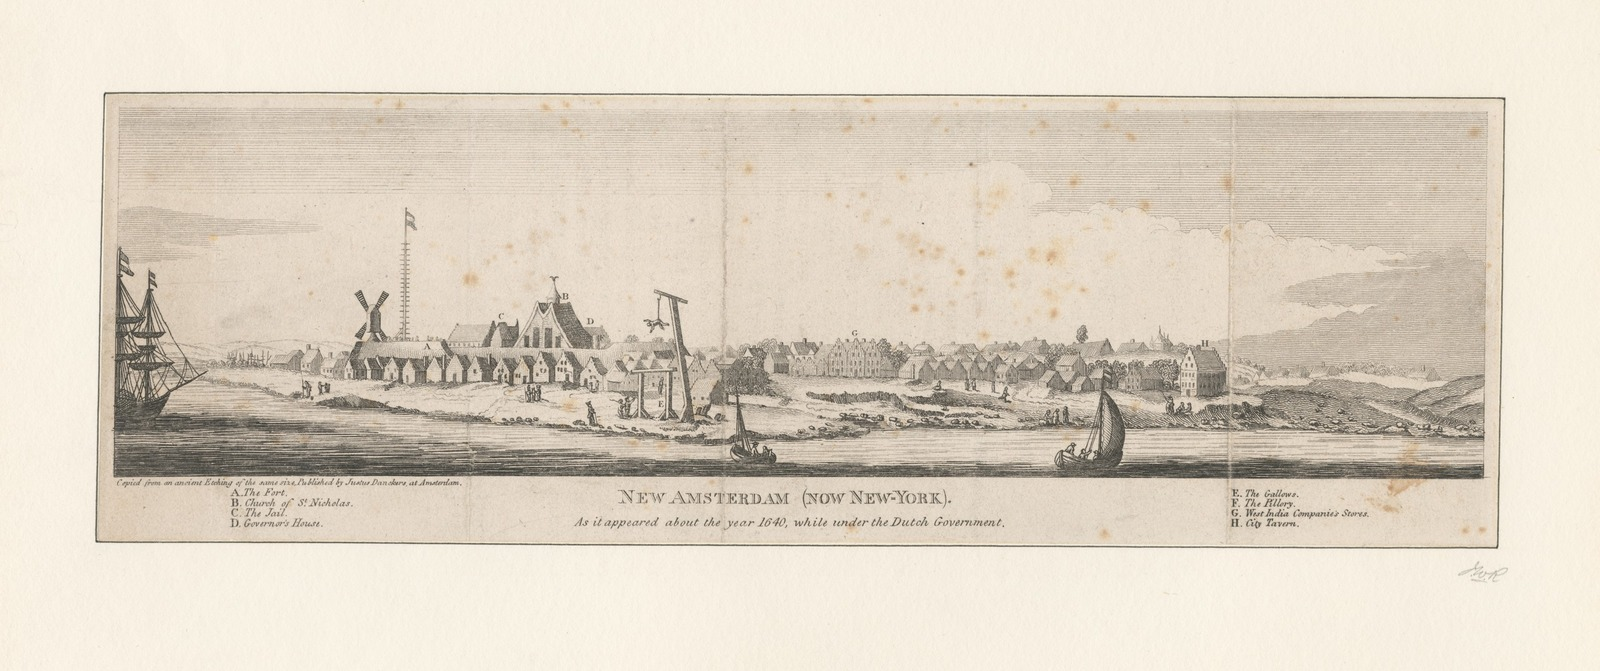 New Amsterdam (now New York) as it appeared about the year 1640